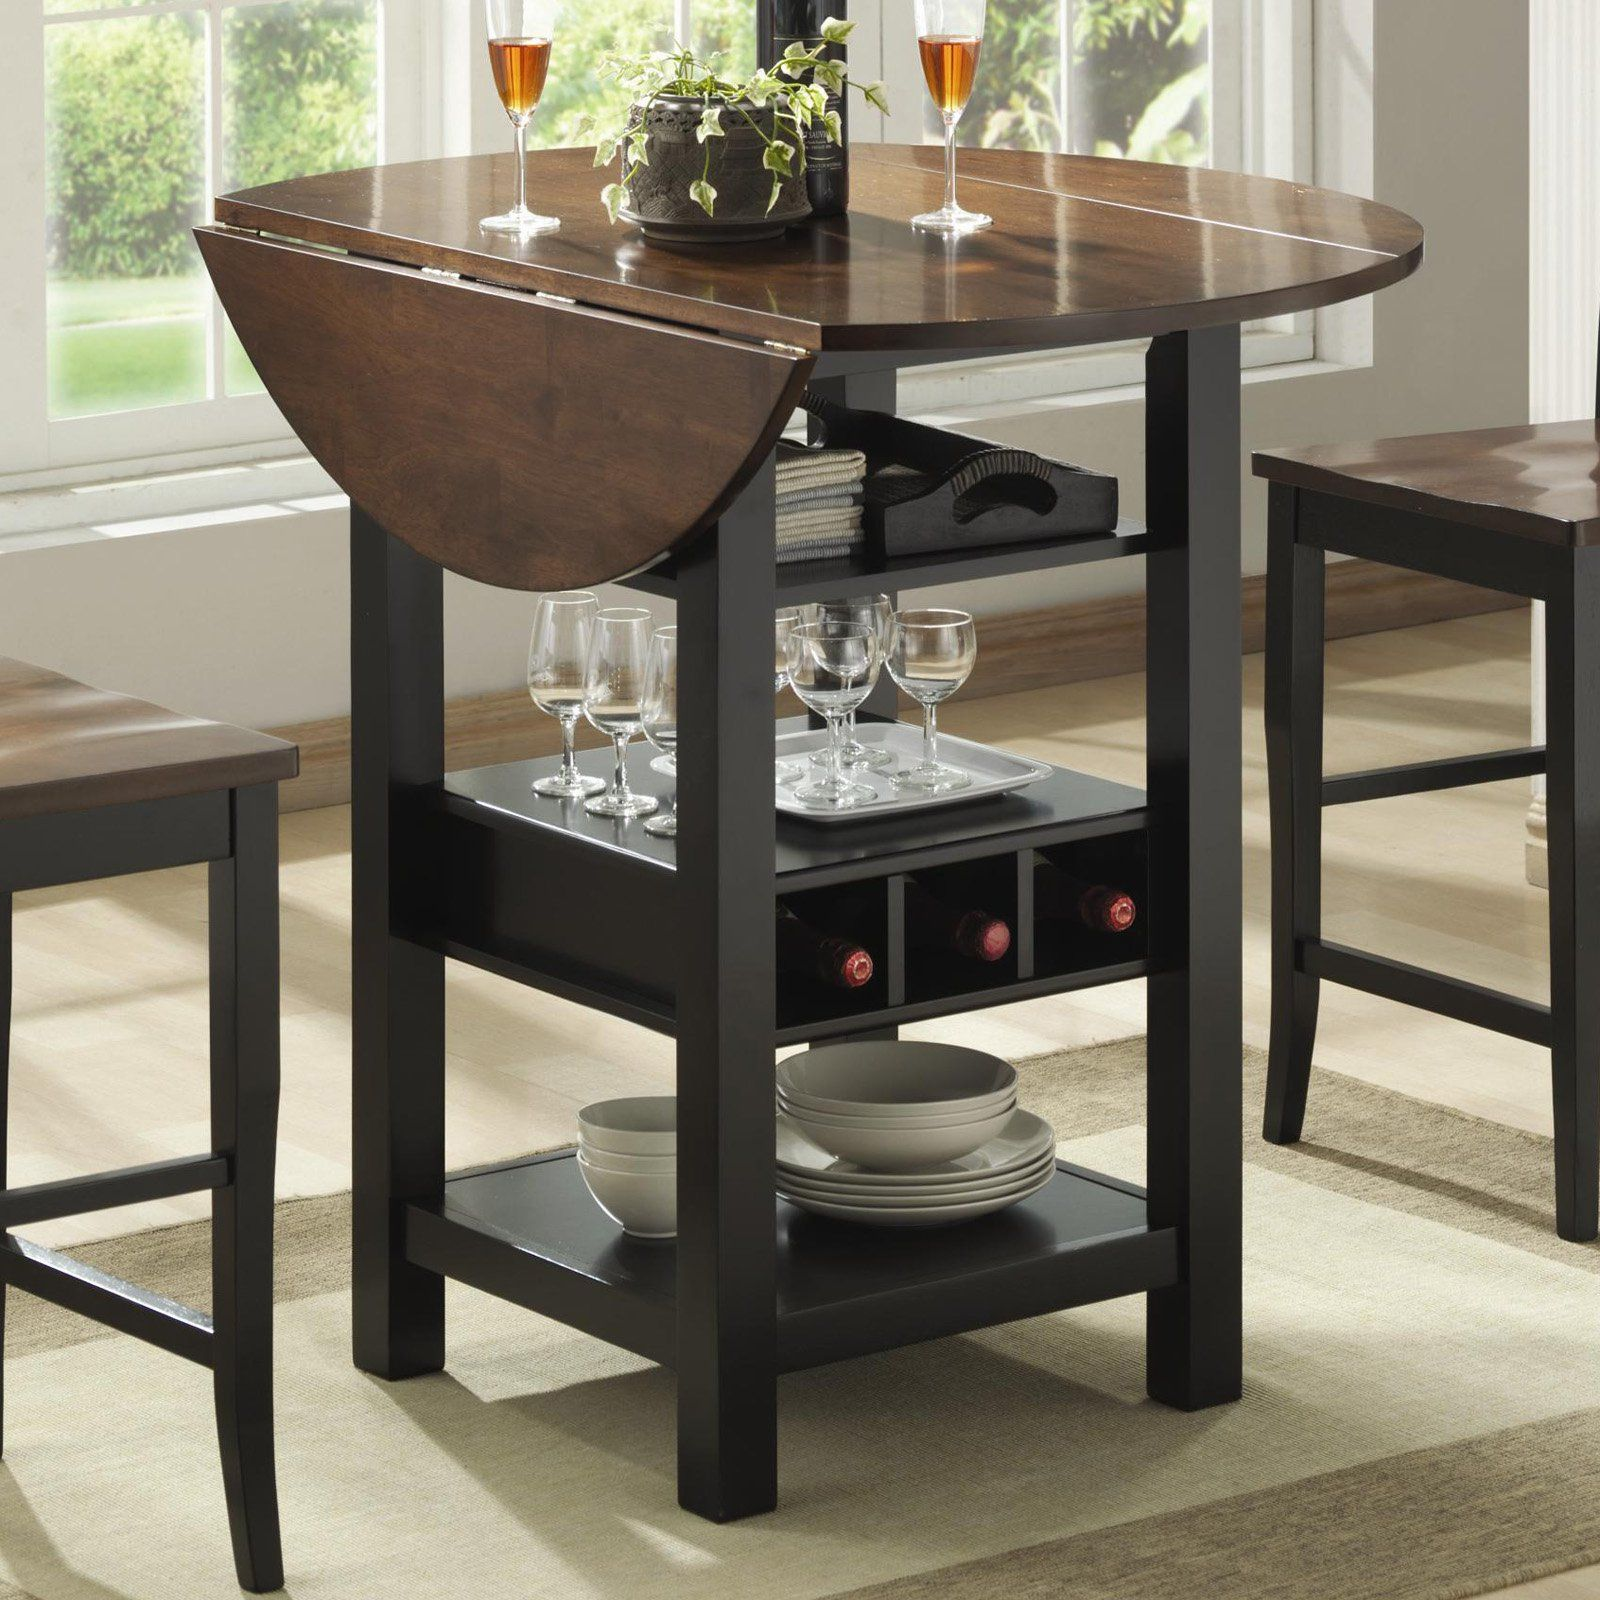 Ridgewood Counter Height Drop Leaf Dining Table With Storage In 2020 Pub Table And Chairs Dining Table With Storage Kitchen Table Settings